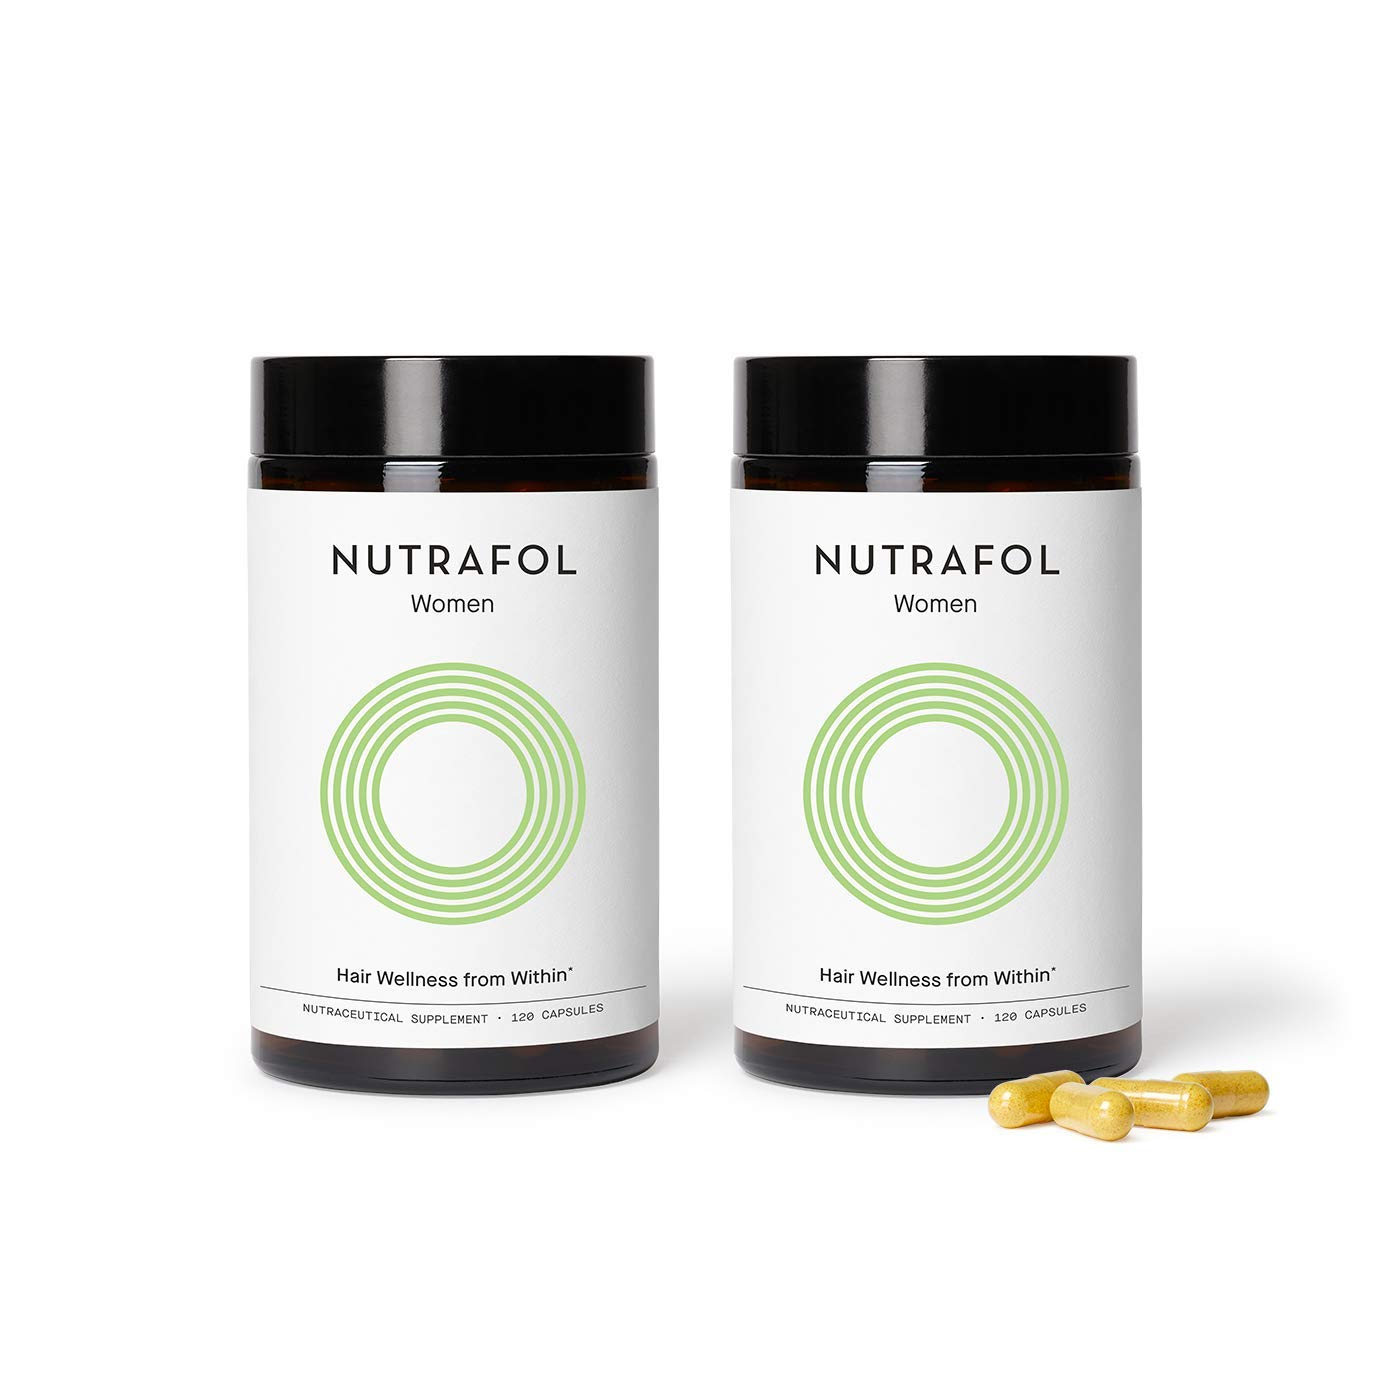 Nutrafol Women Hair Growth For Thicker, Stronger Hair (4 Capsules Per Day) (2 Months Supply)